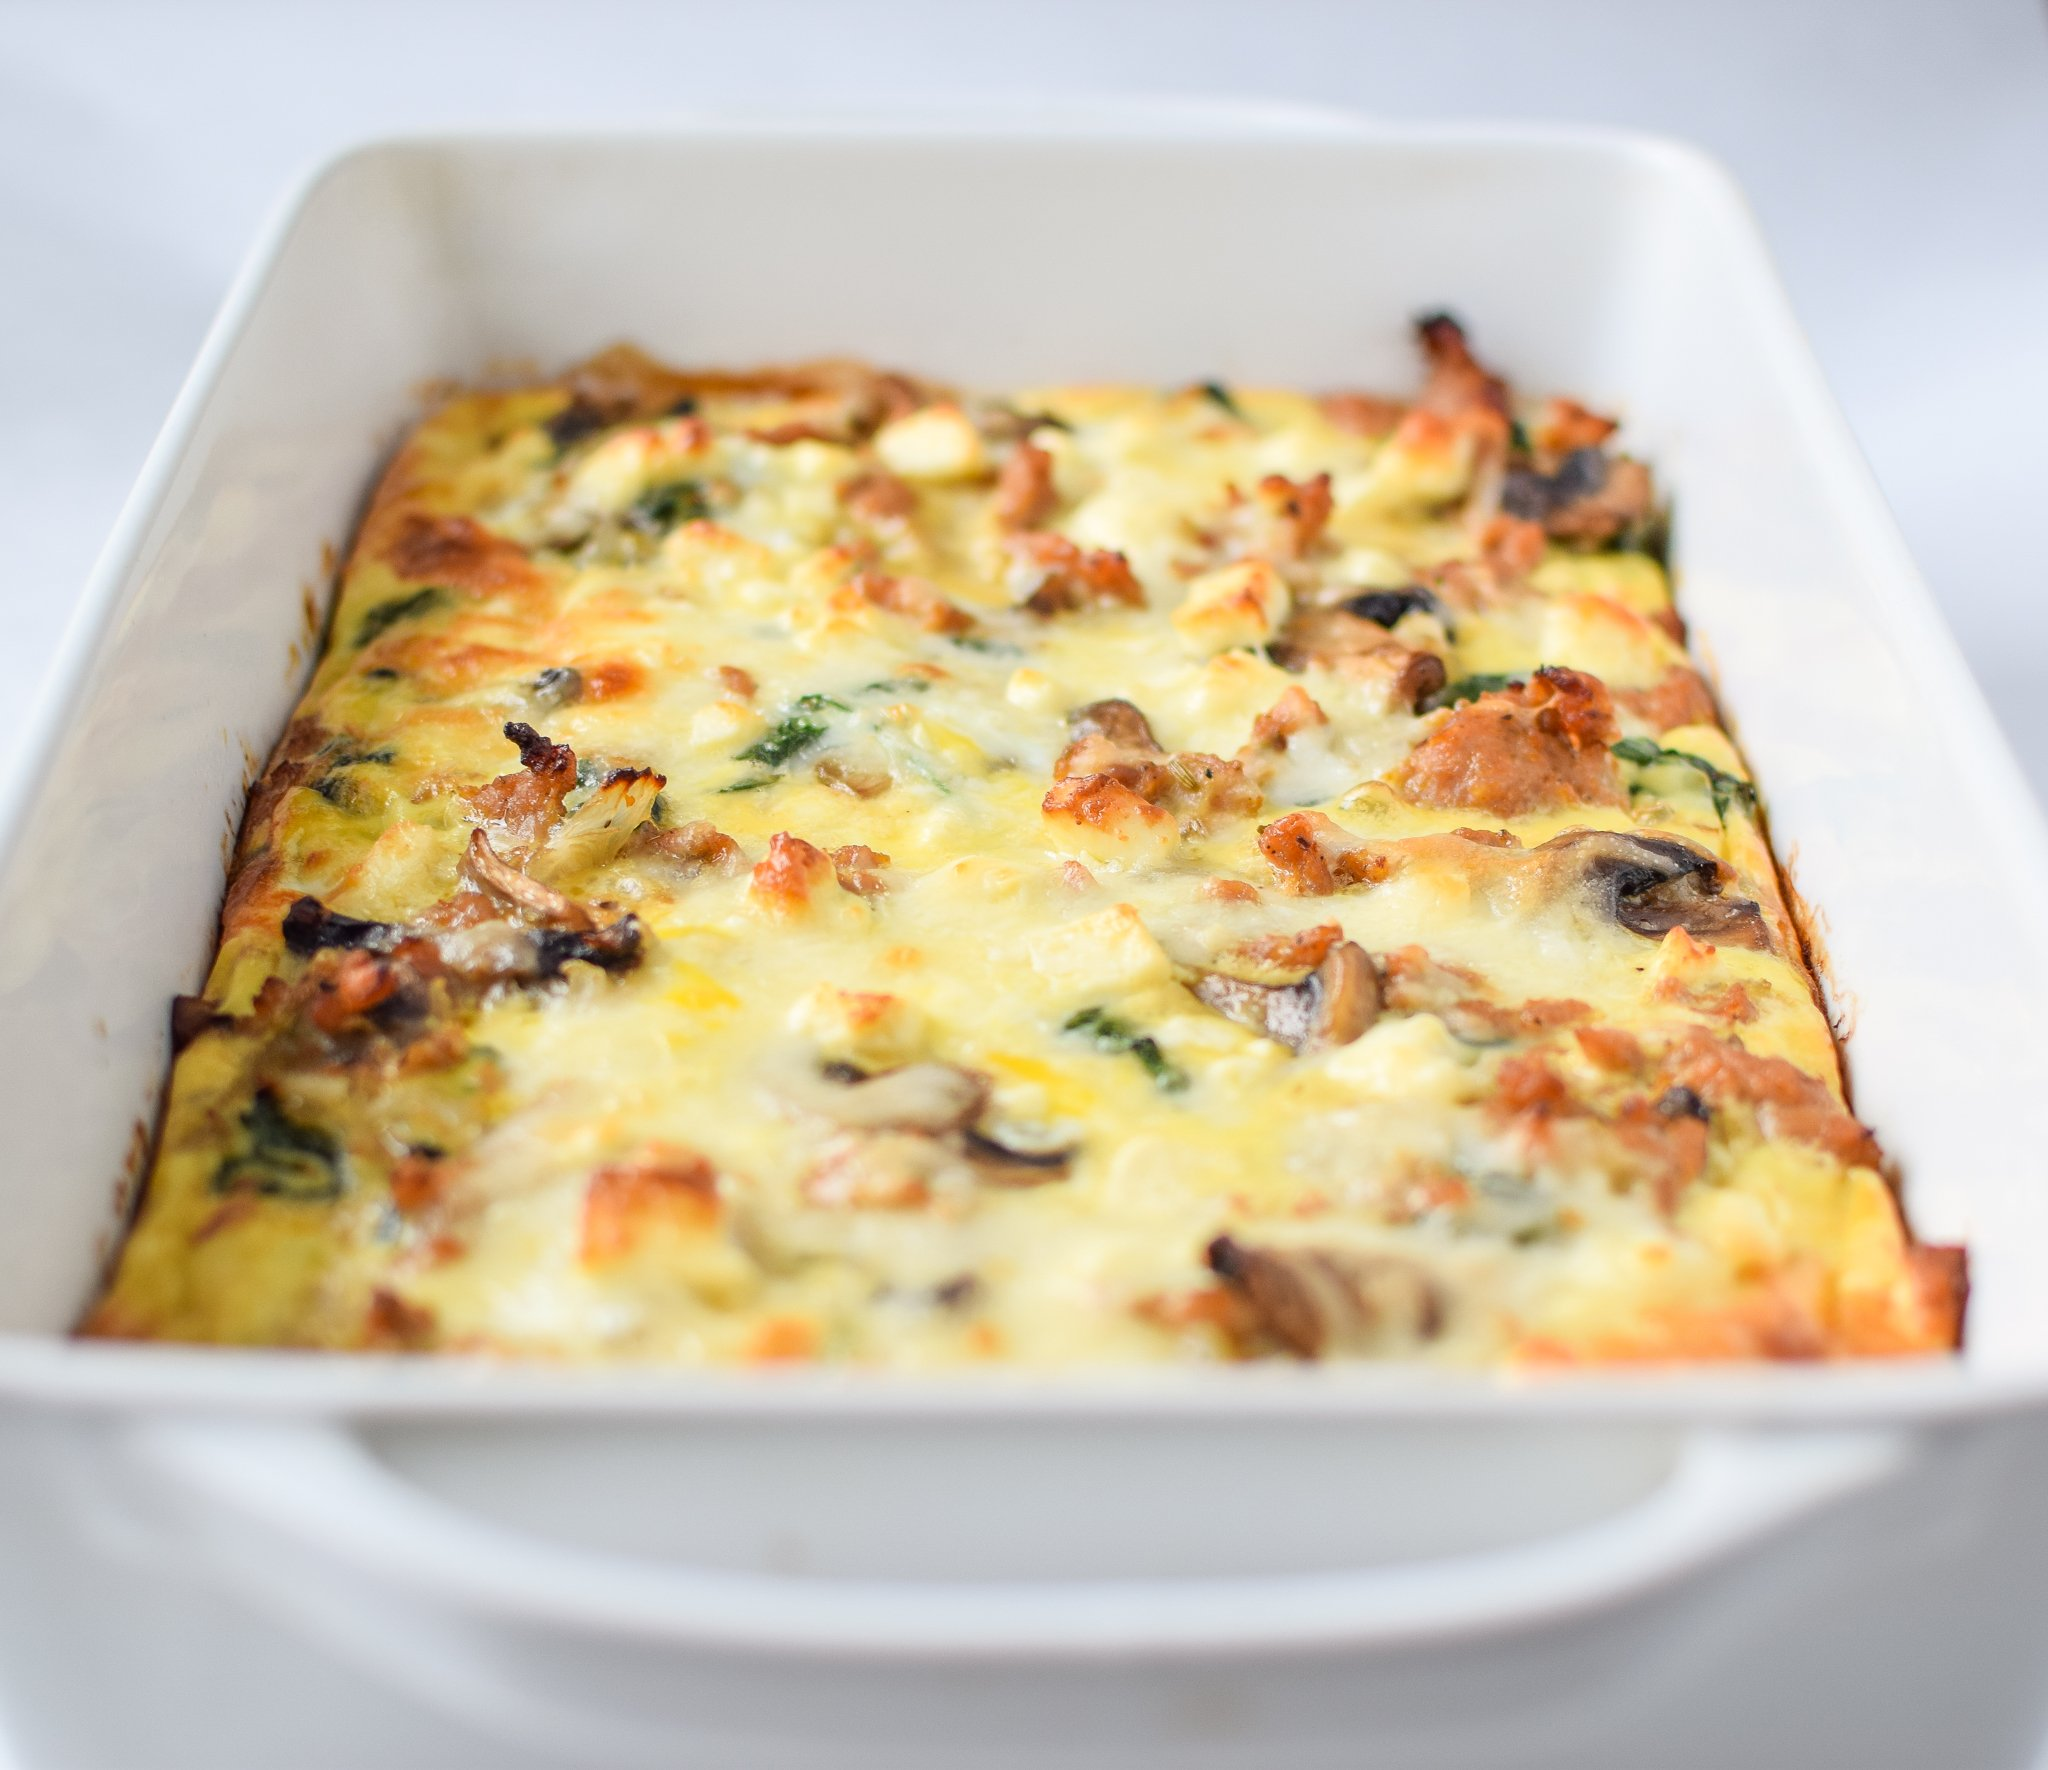 Spinach Feta Chicken Sausage Breakfast Casserole with Sweet Potato Crust - A tasty breakfast favorite for a crowd (or meal prepped!) with an easy sweet potato crust! - ProjectMealPlan.com